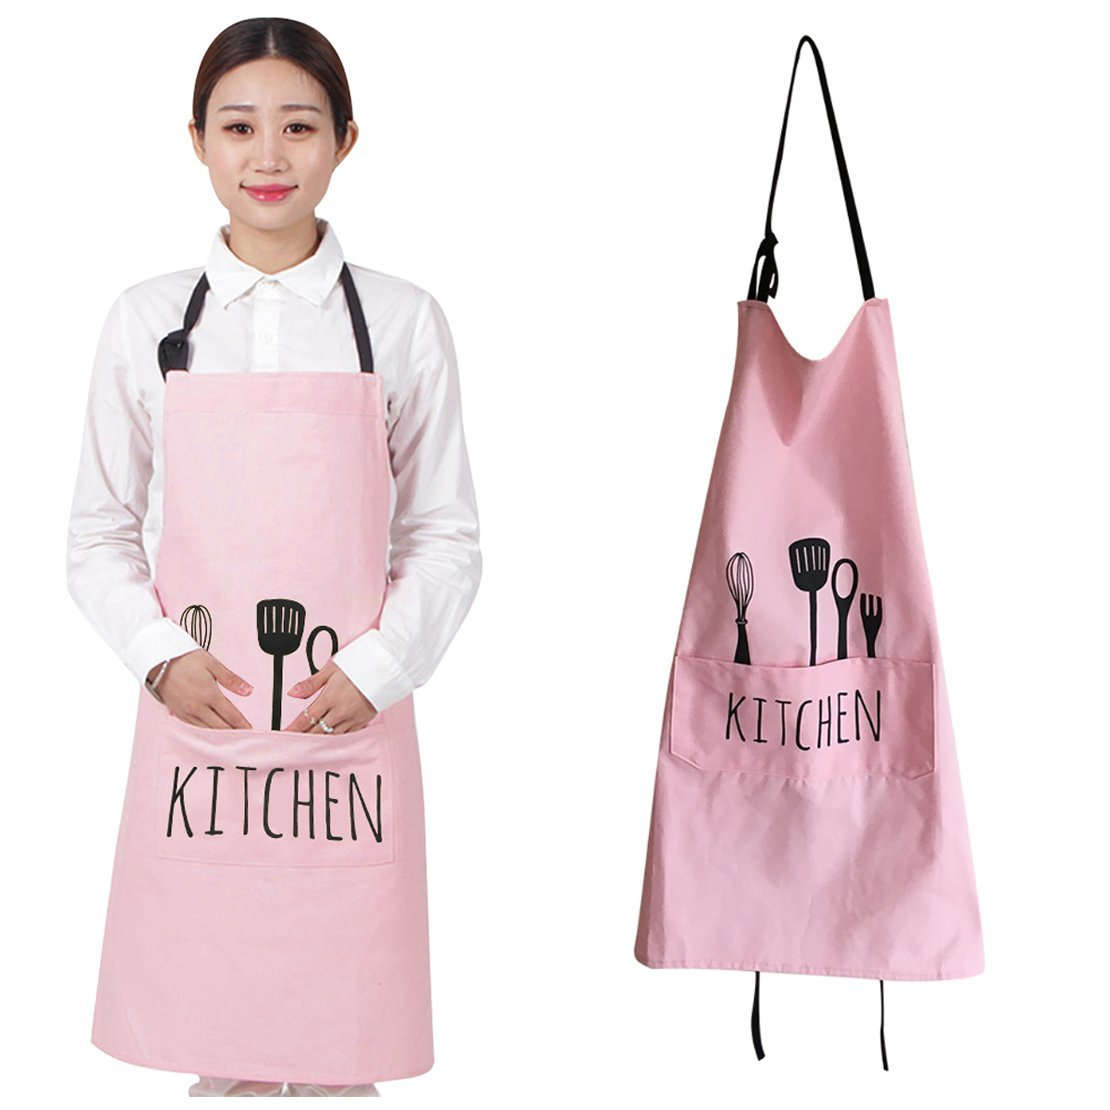 YFLY Cotton Cooking Kitchen Aprons Restaurant Apron for Women Men Chef,Waterproof Kitchen Apron with Big Pockets Adjustable Bib for Cooking, Crafting, Gardening Restaurant